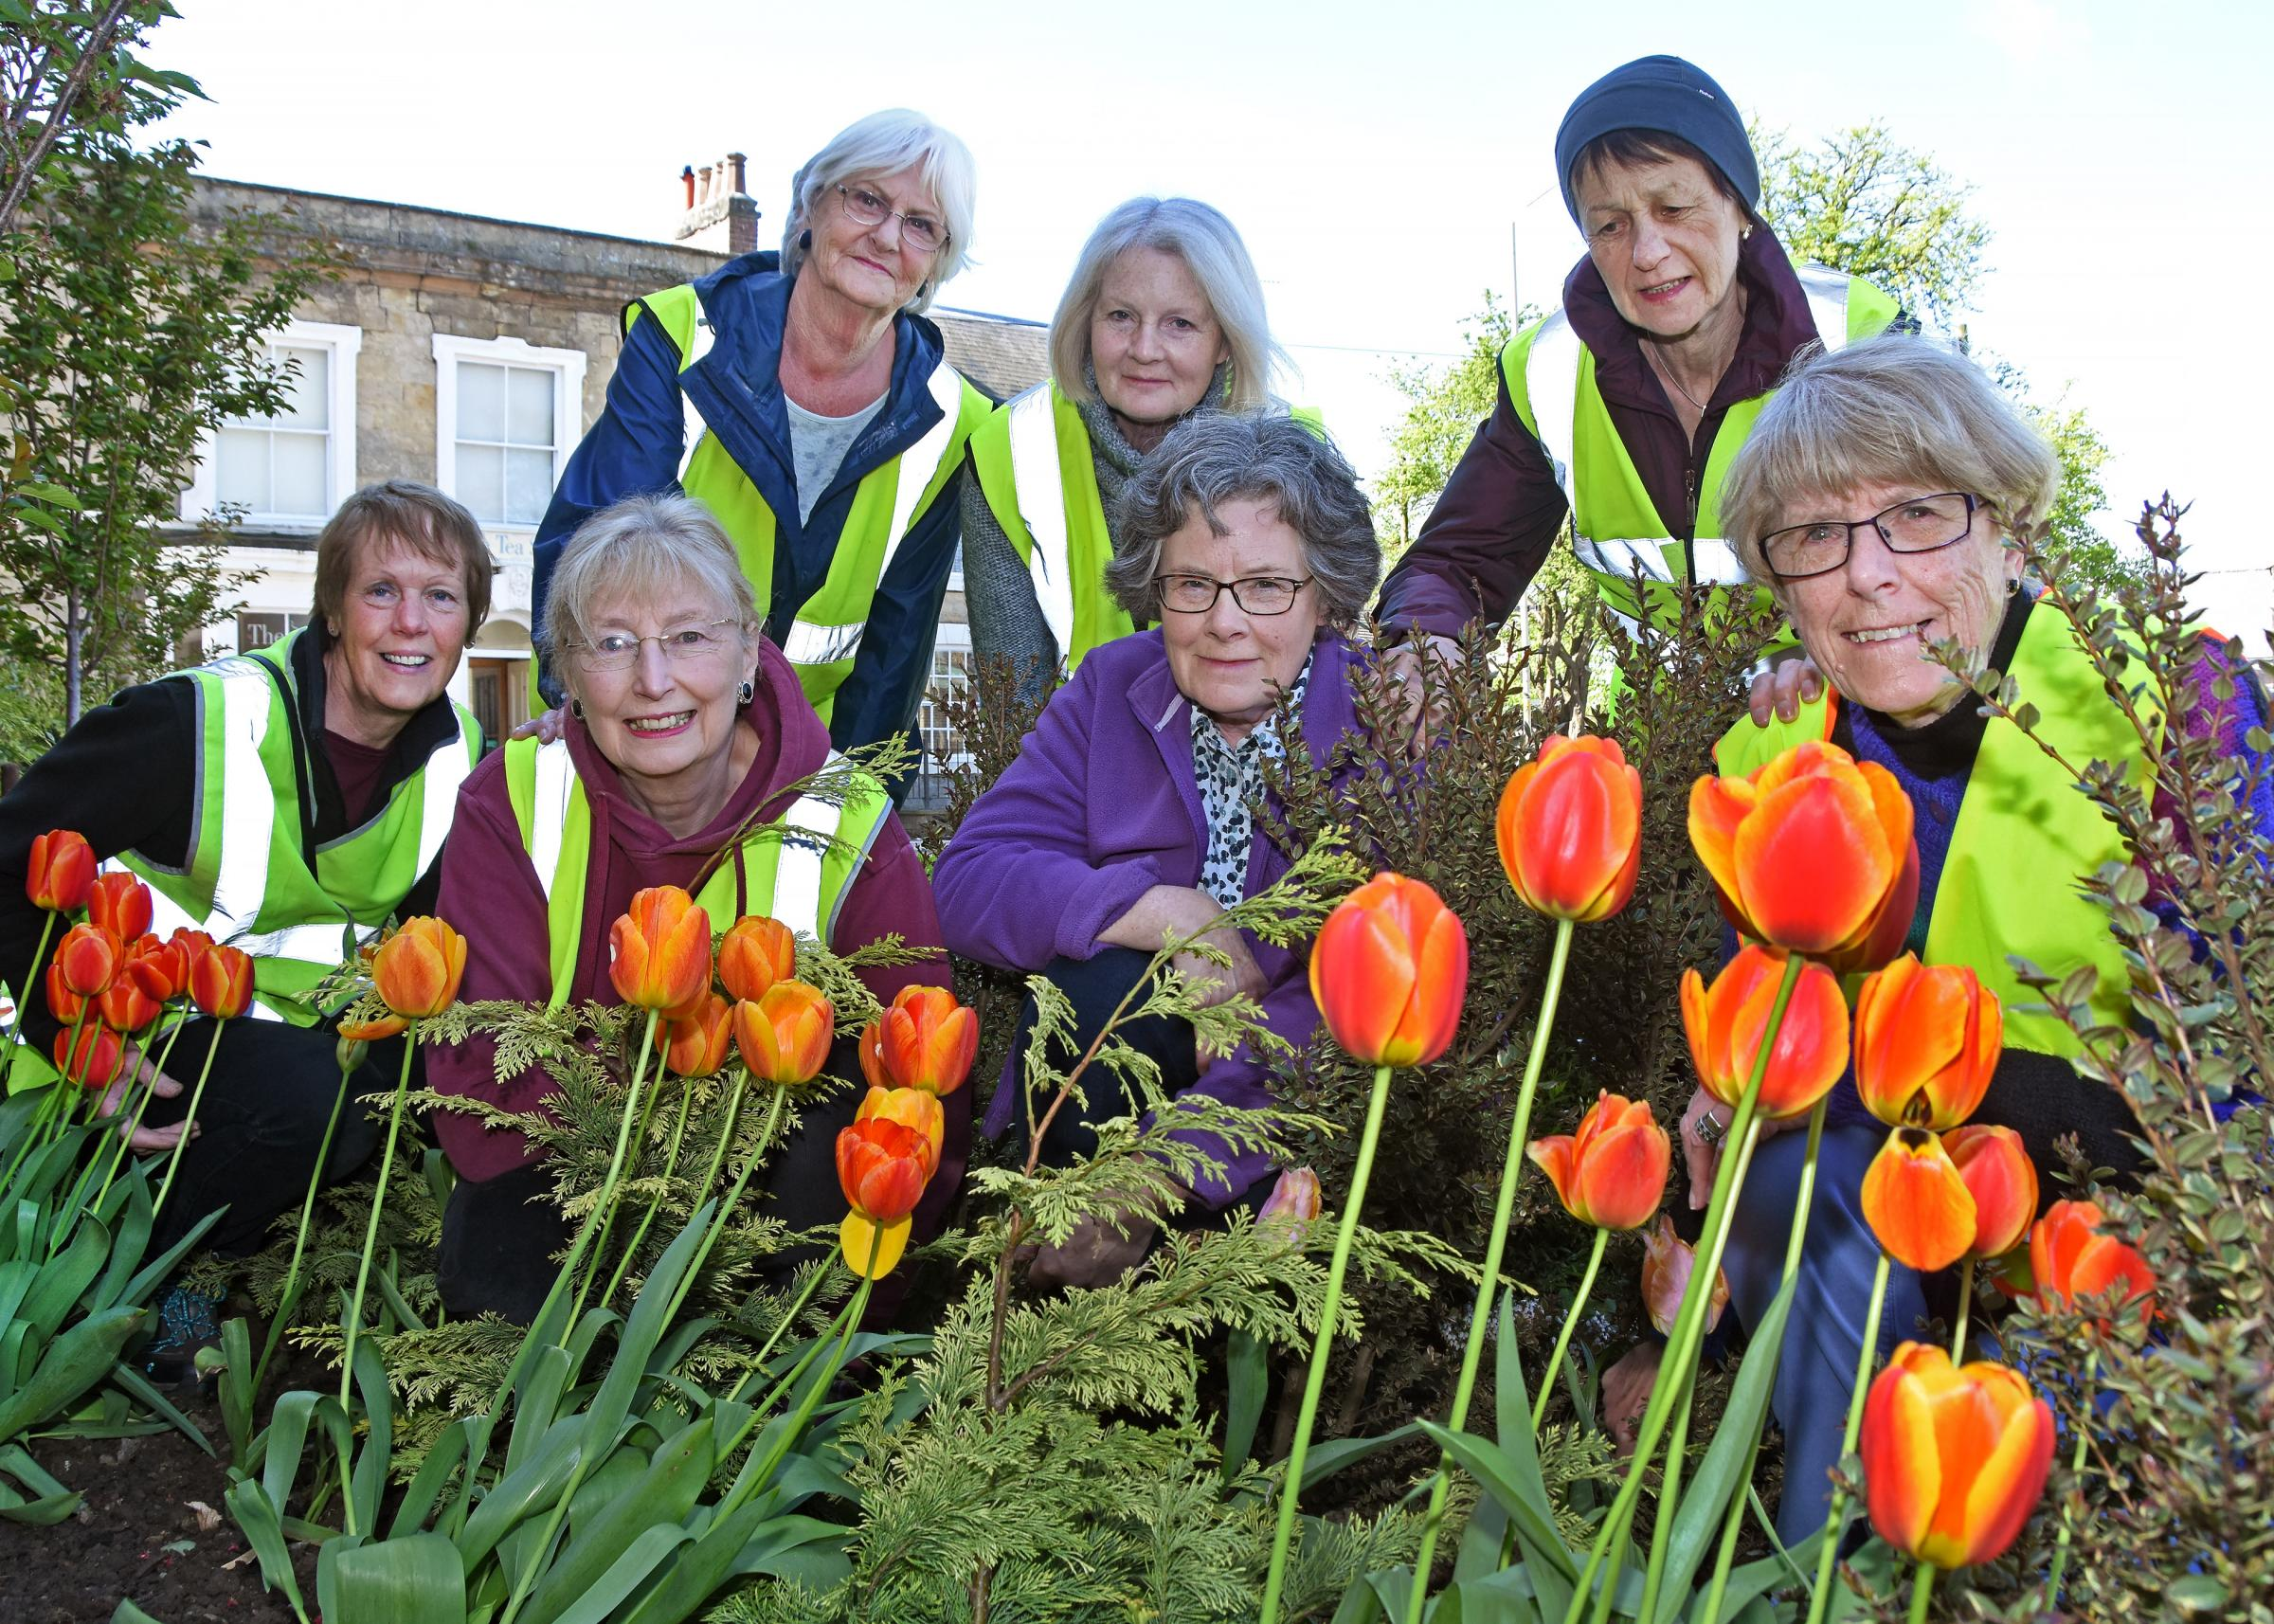 Pickering In Bloom group members Joy Rayment, Marion Pearce, Vonnie Atkinson, Catherine Stables, Margaret Hemmings, Chris Rowland and Eileen Blakeley appeal for more volunteers in join them       Picture: David Harrison